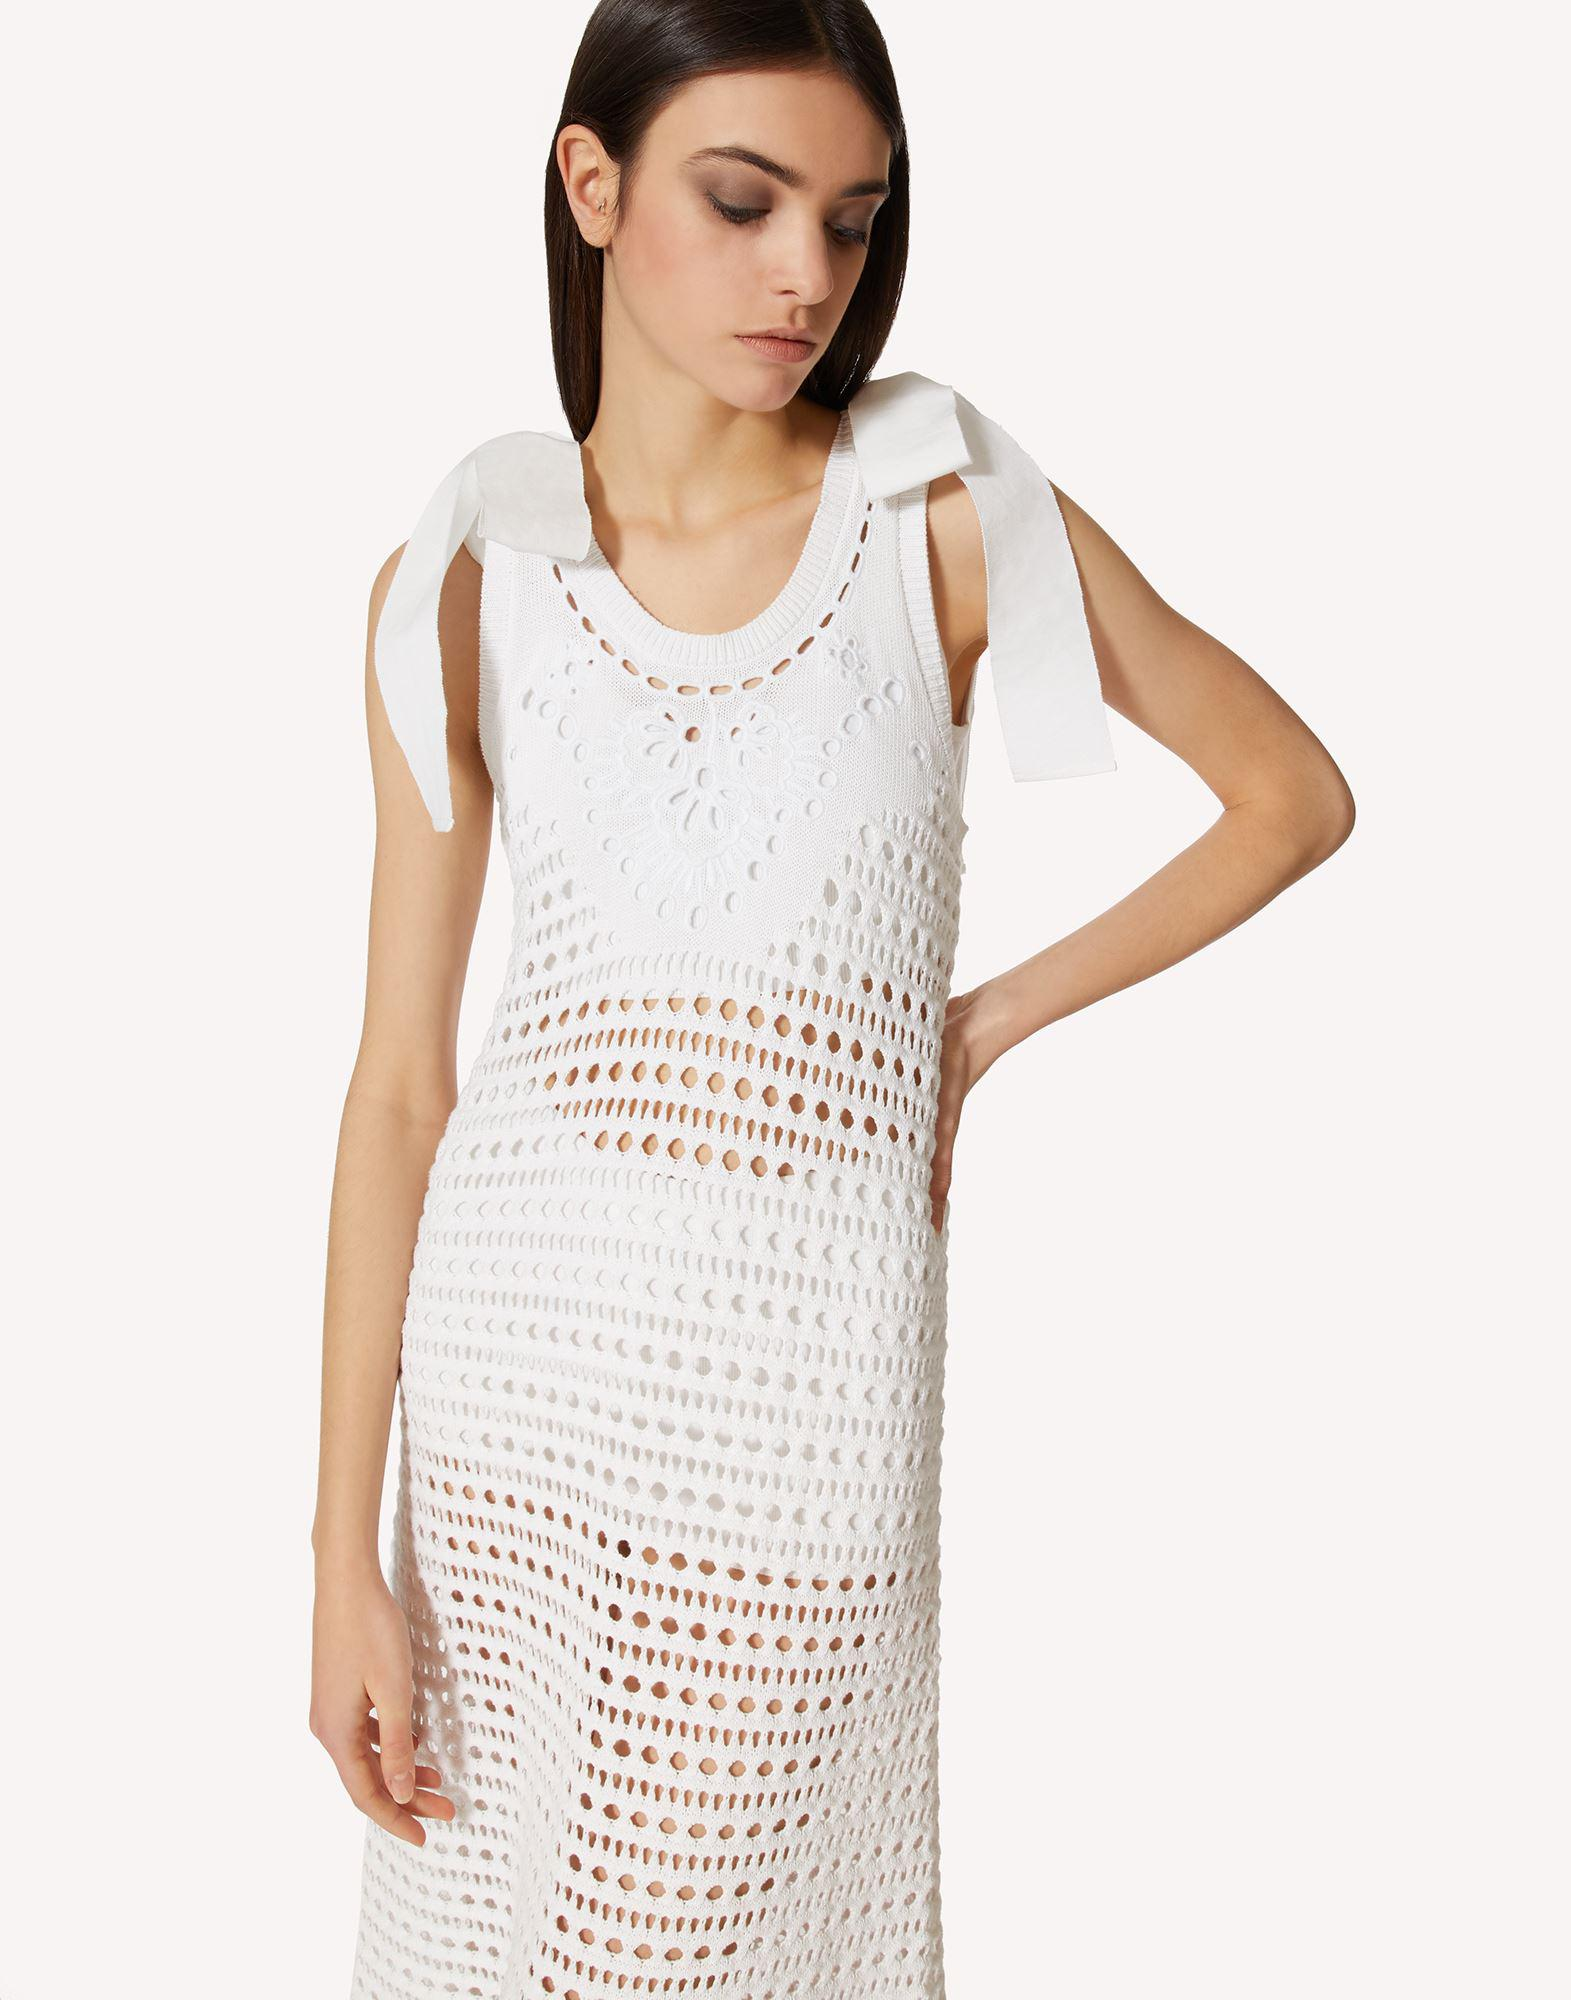 COTTON KNIT DRESS WITH SANGALLO EMBROIDERY 3